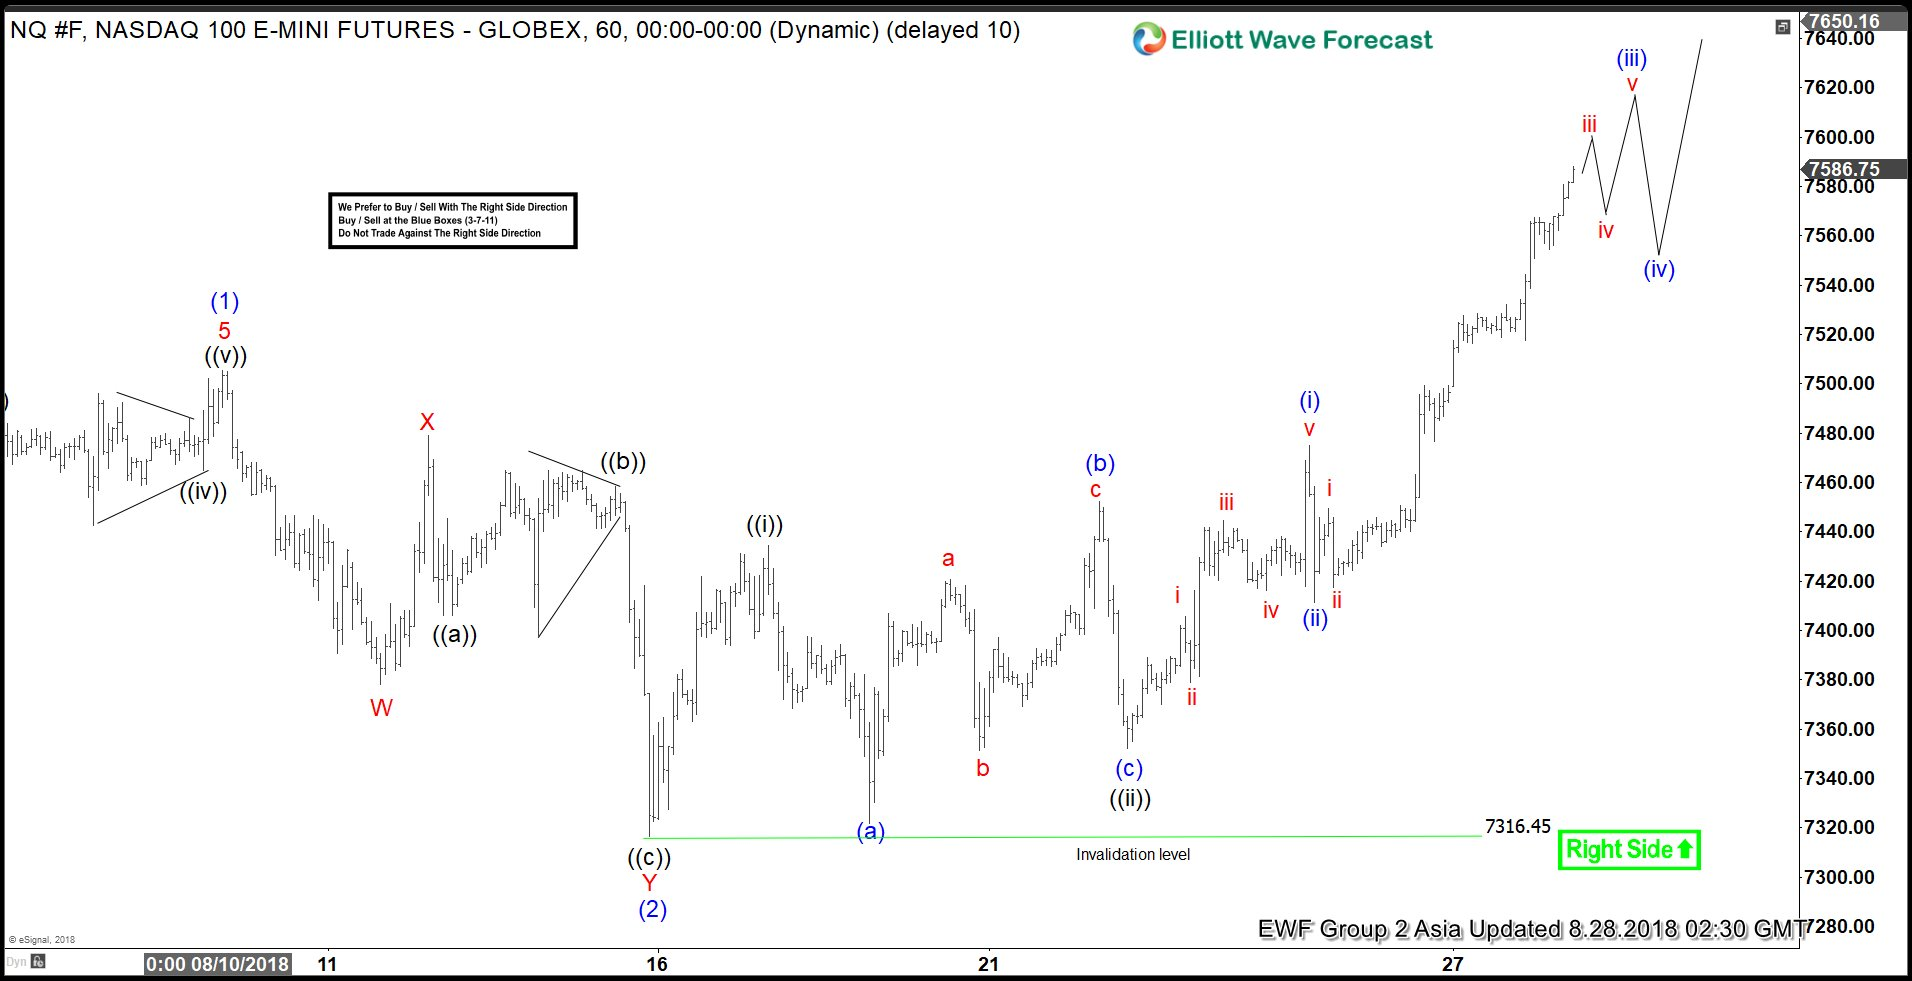 NASDAQ Elliott Wave Analysis: Nesting Higher As Impulse